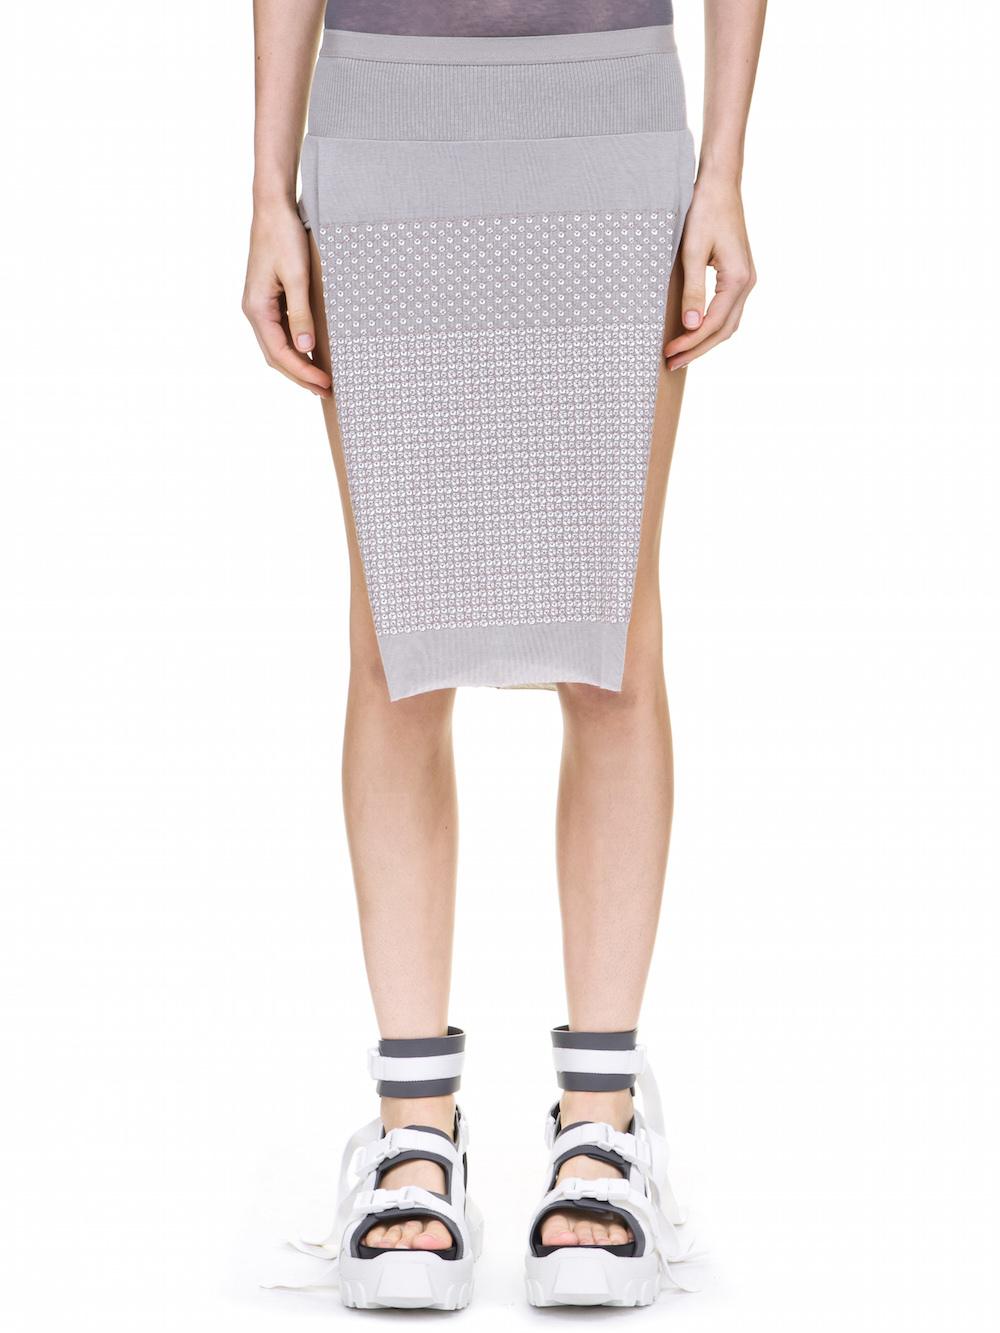 RICK OWENS LOIN SKIRT IN GREY COVERED BY WHITE SEQUINS